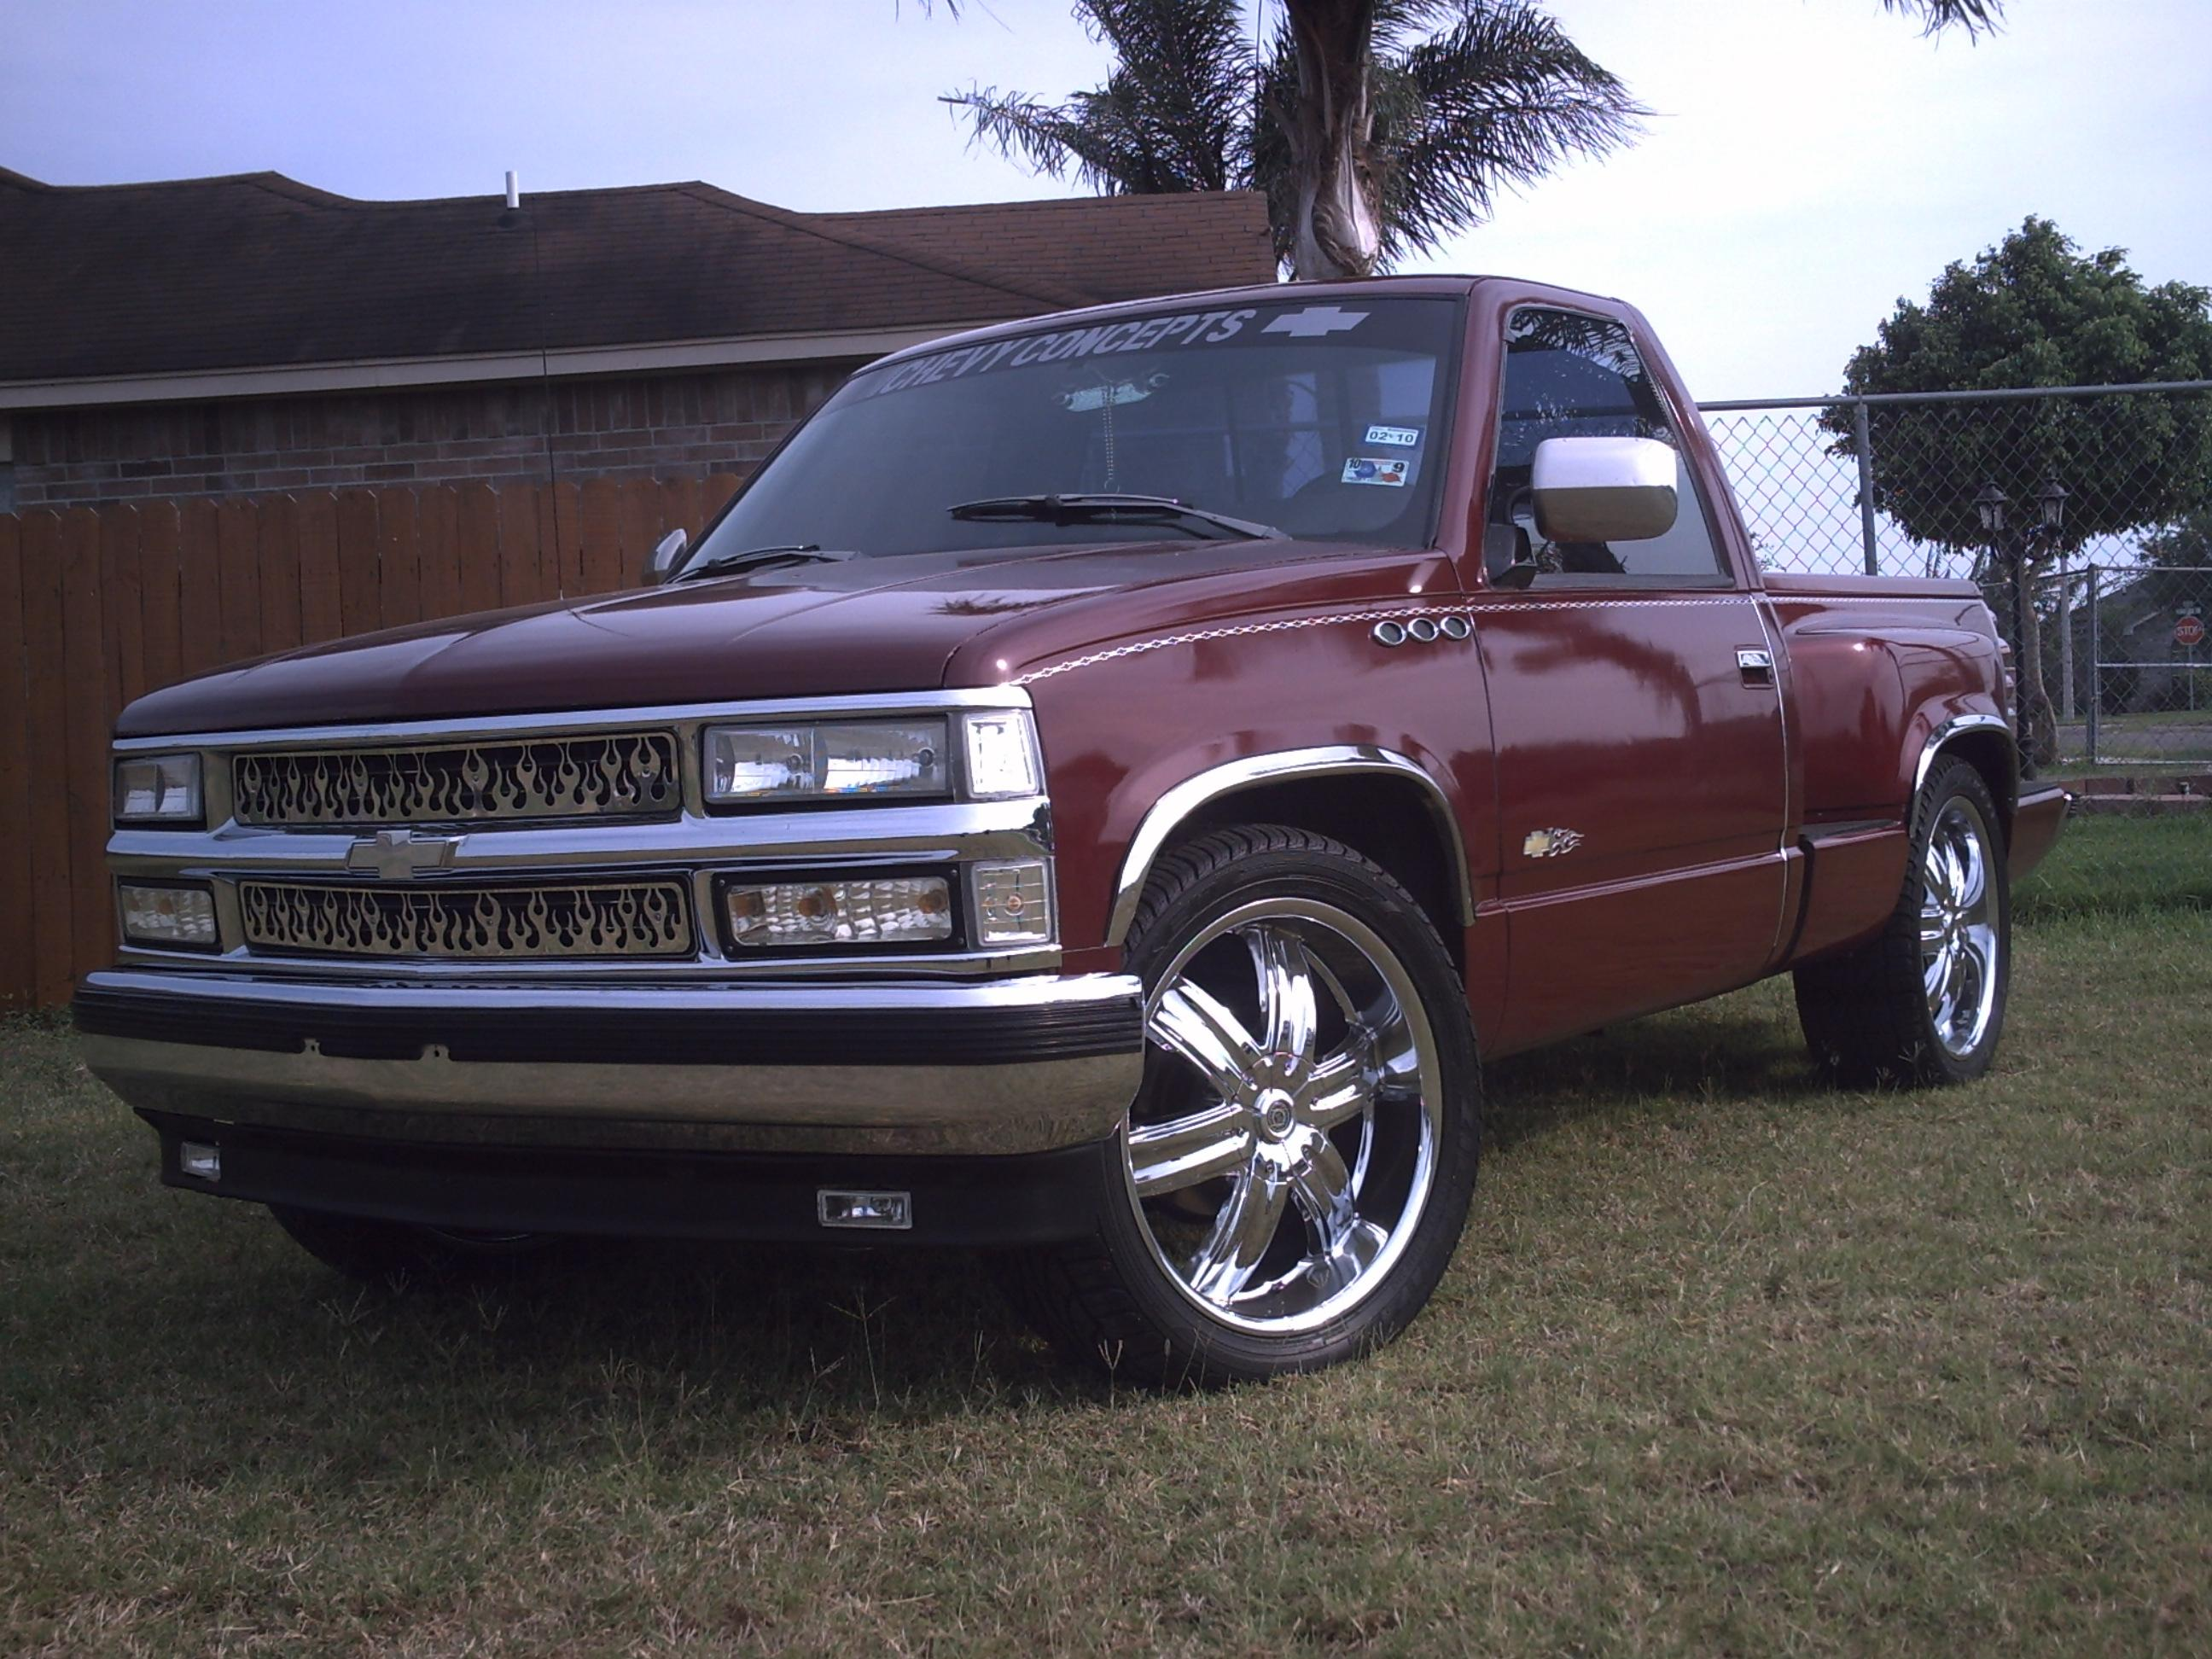 CHEVYCONCEPTS93 1993 Chevrolet C/K Pick-Up Specs, Photos ...